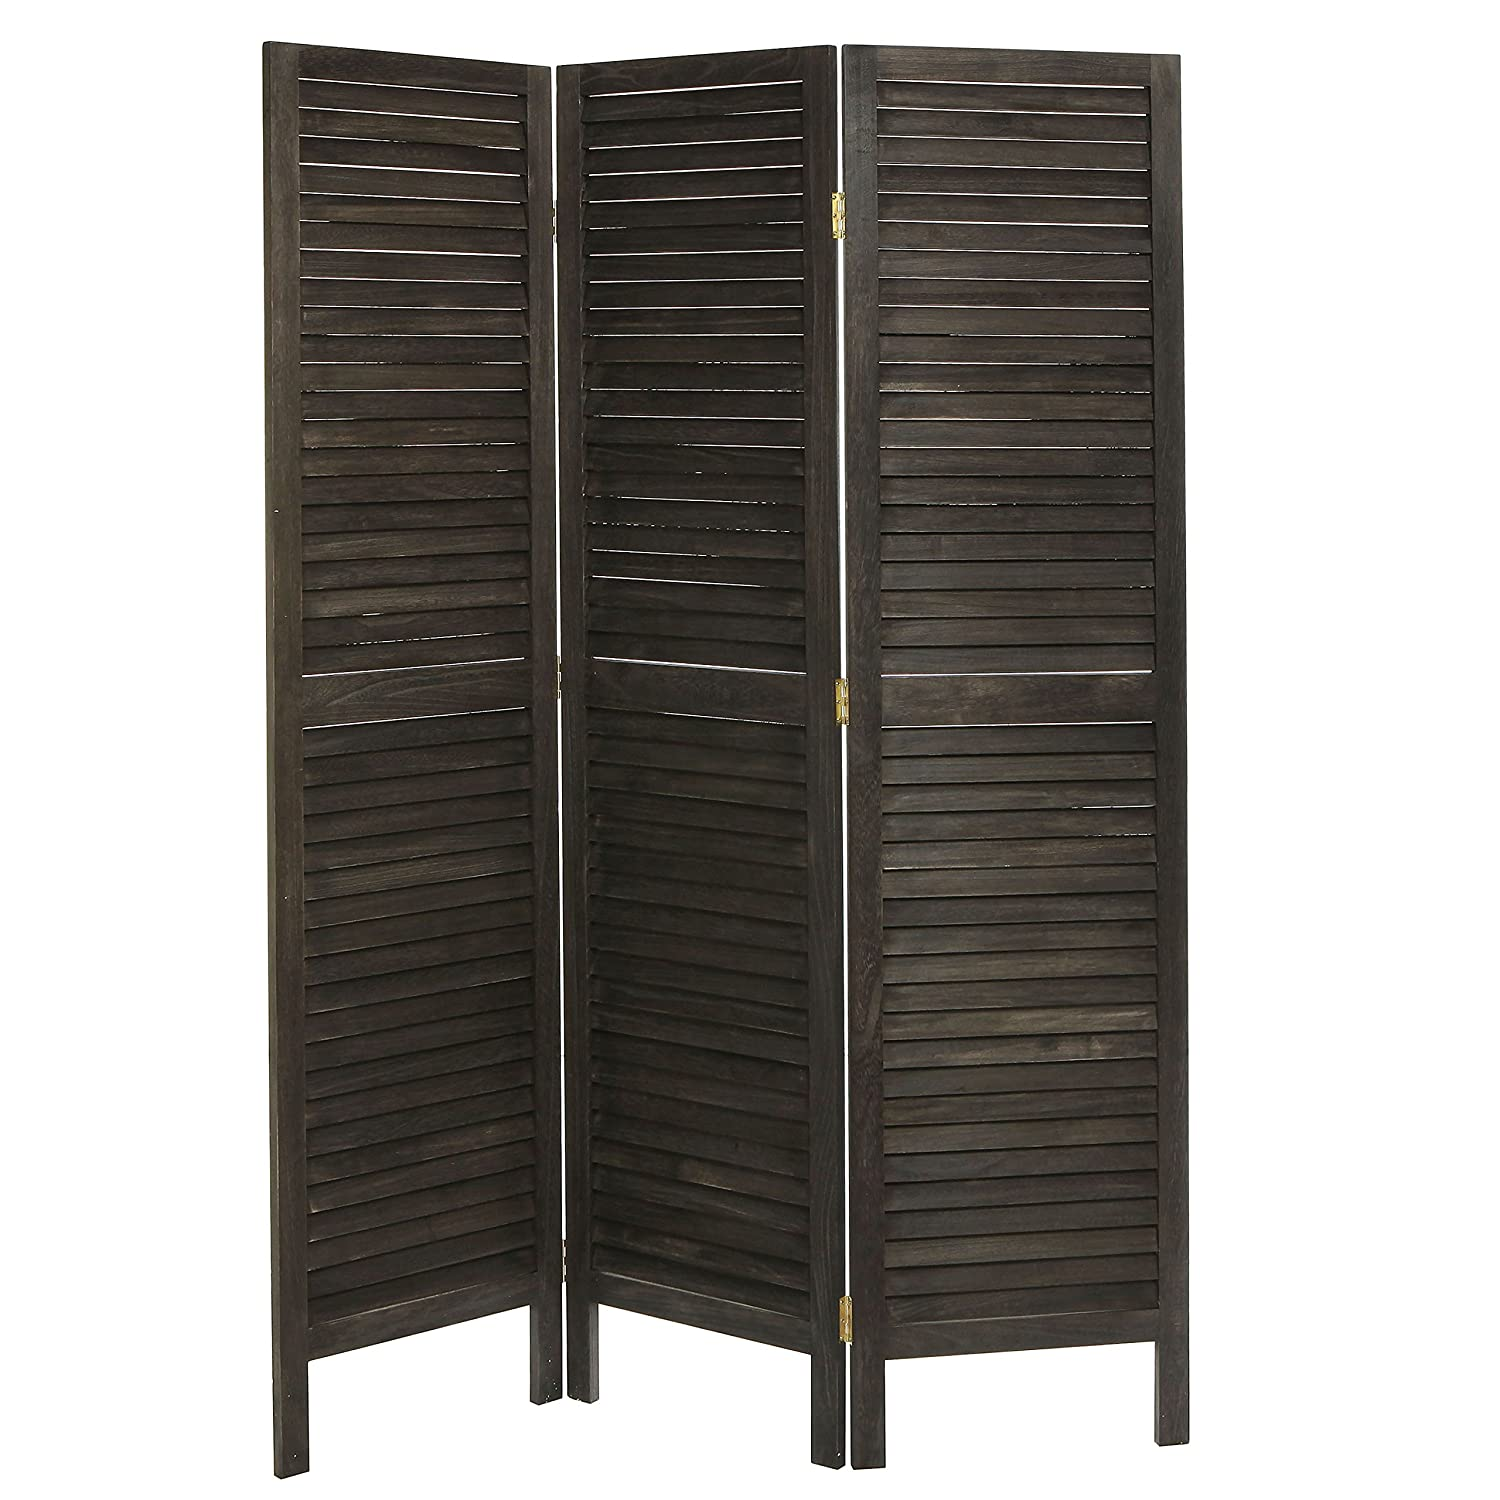 Amazon Com Rustic Dark Brown Wood Louvered Panels Freestanding 3 Partition Folding Room Divider Privacy Screen Kitchen Dining